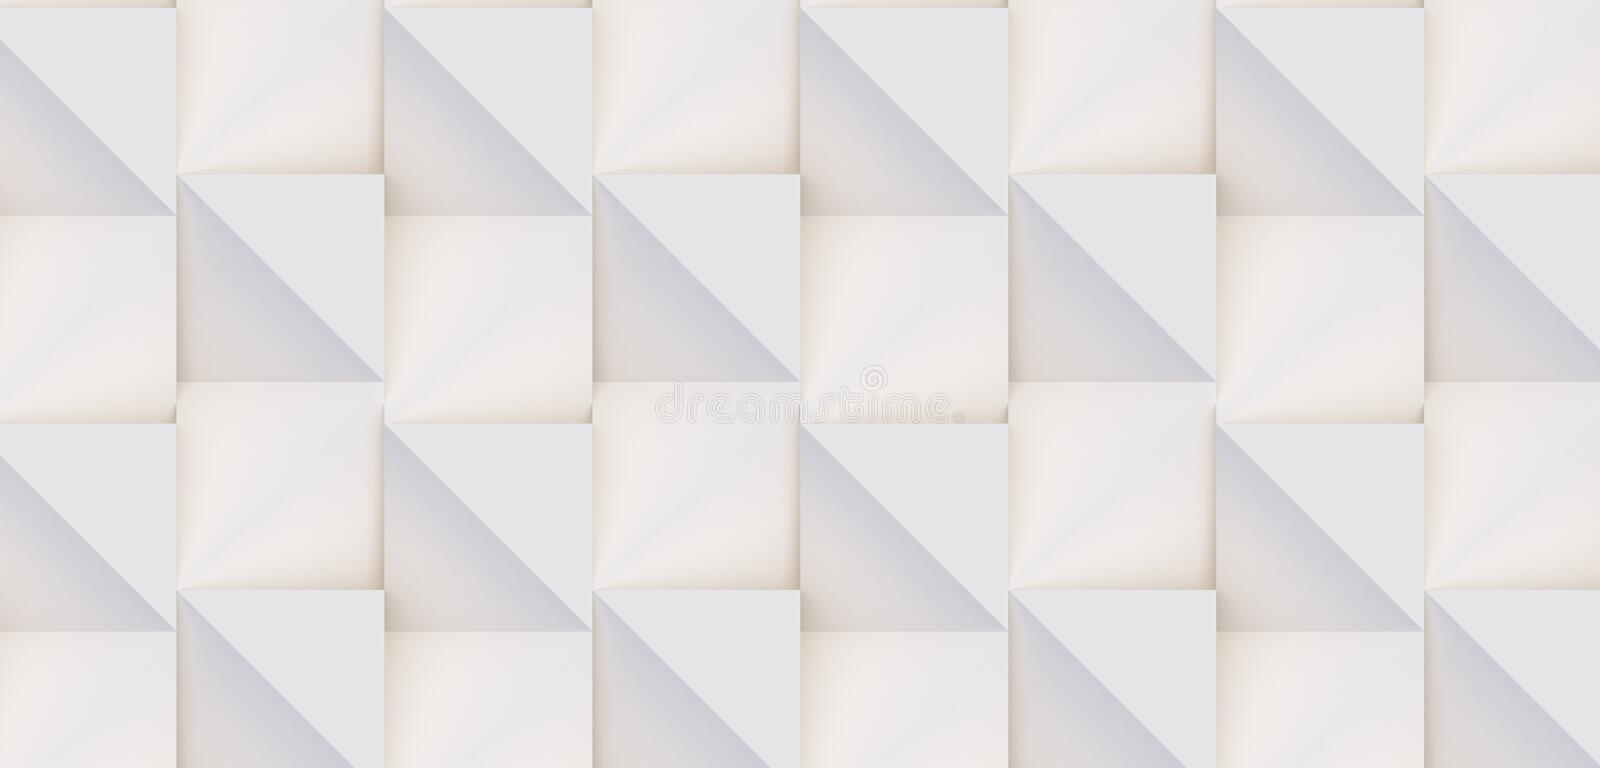 3D pattern of white and beige geometric shapes. 3D pattern made of white and beige geometric shapes, creative background or wallpaper surface made of light and stock photo